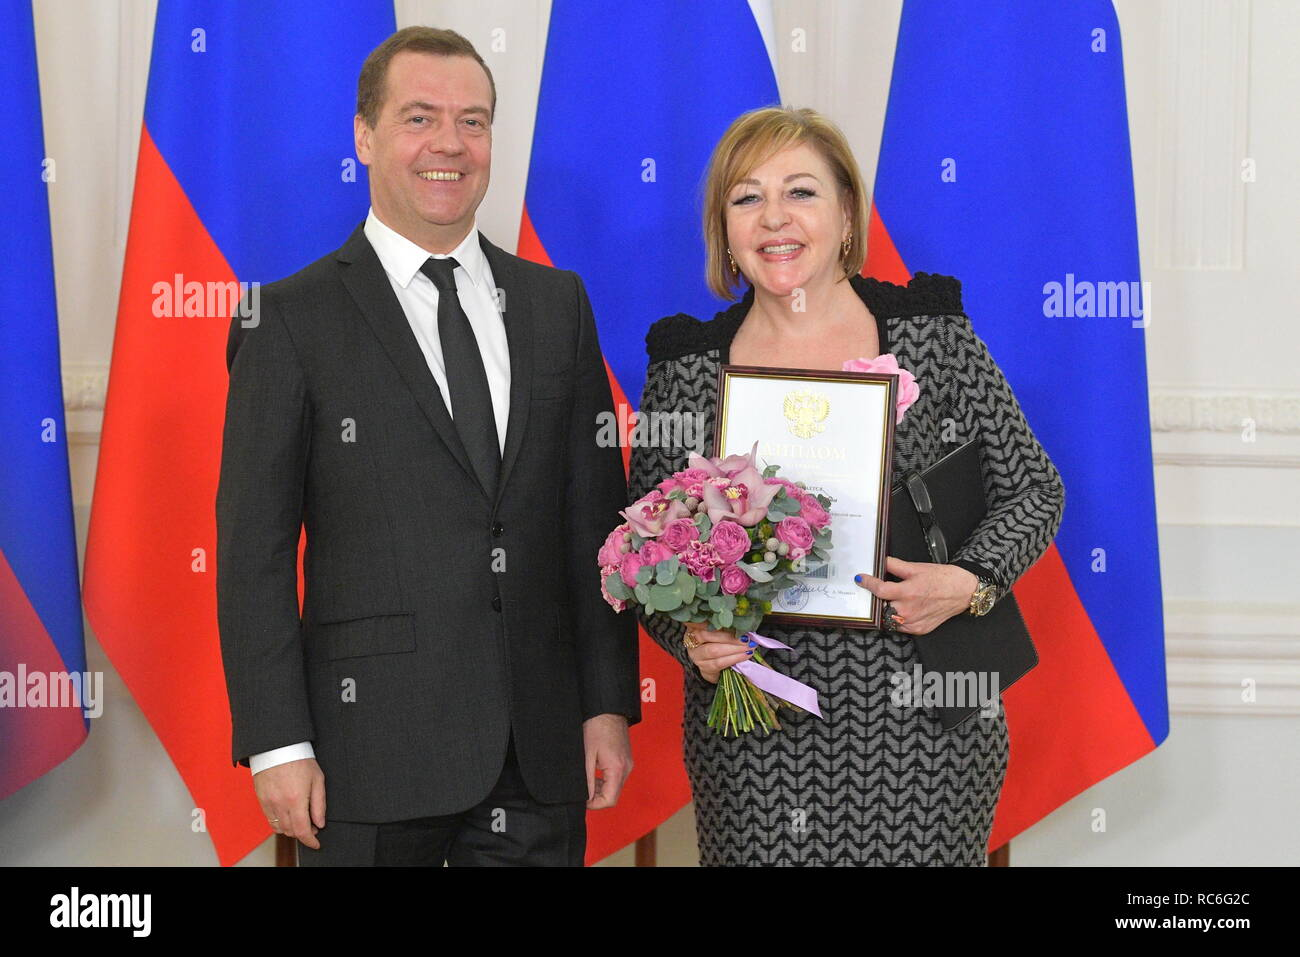 Moscow, Russia. 14th Jan, 2019. MOSCOW, RUSSIA - JANUARY 14, 2019: Russia's Prime Minister Dmitry Medvedev (L) and Marietta Rozental, head of the organizing committee of the 20th World Congress of Russian Press in New York City, at a ceremony to present the 2018 Mass Media government awards. Alexander Astafyev/Russian Government Press Office/TASS Credit: ITAR-TASS News Agency/Alamy Live News - Stock Image